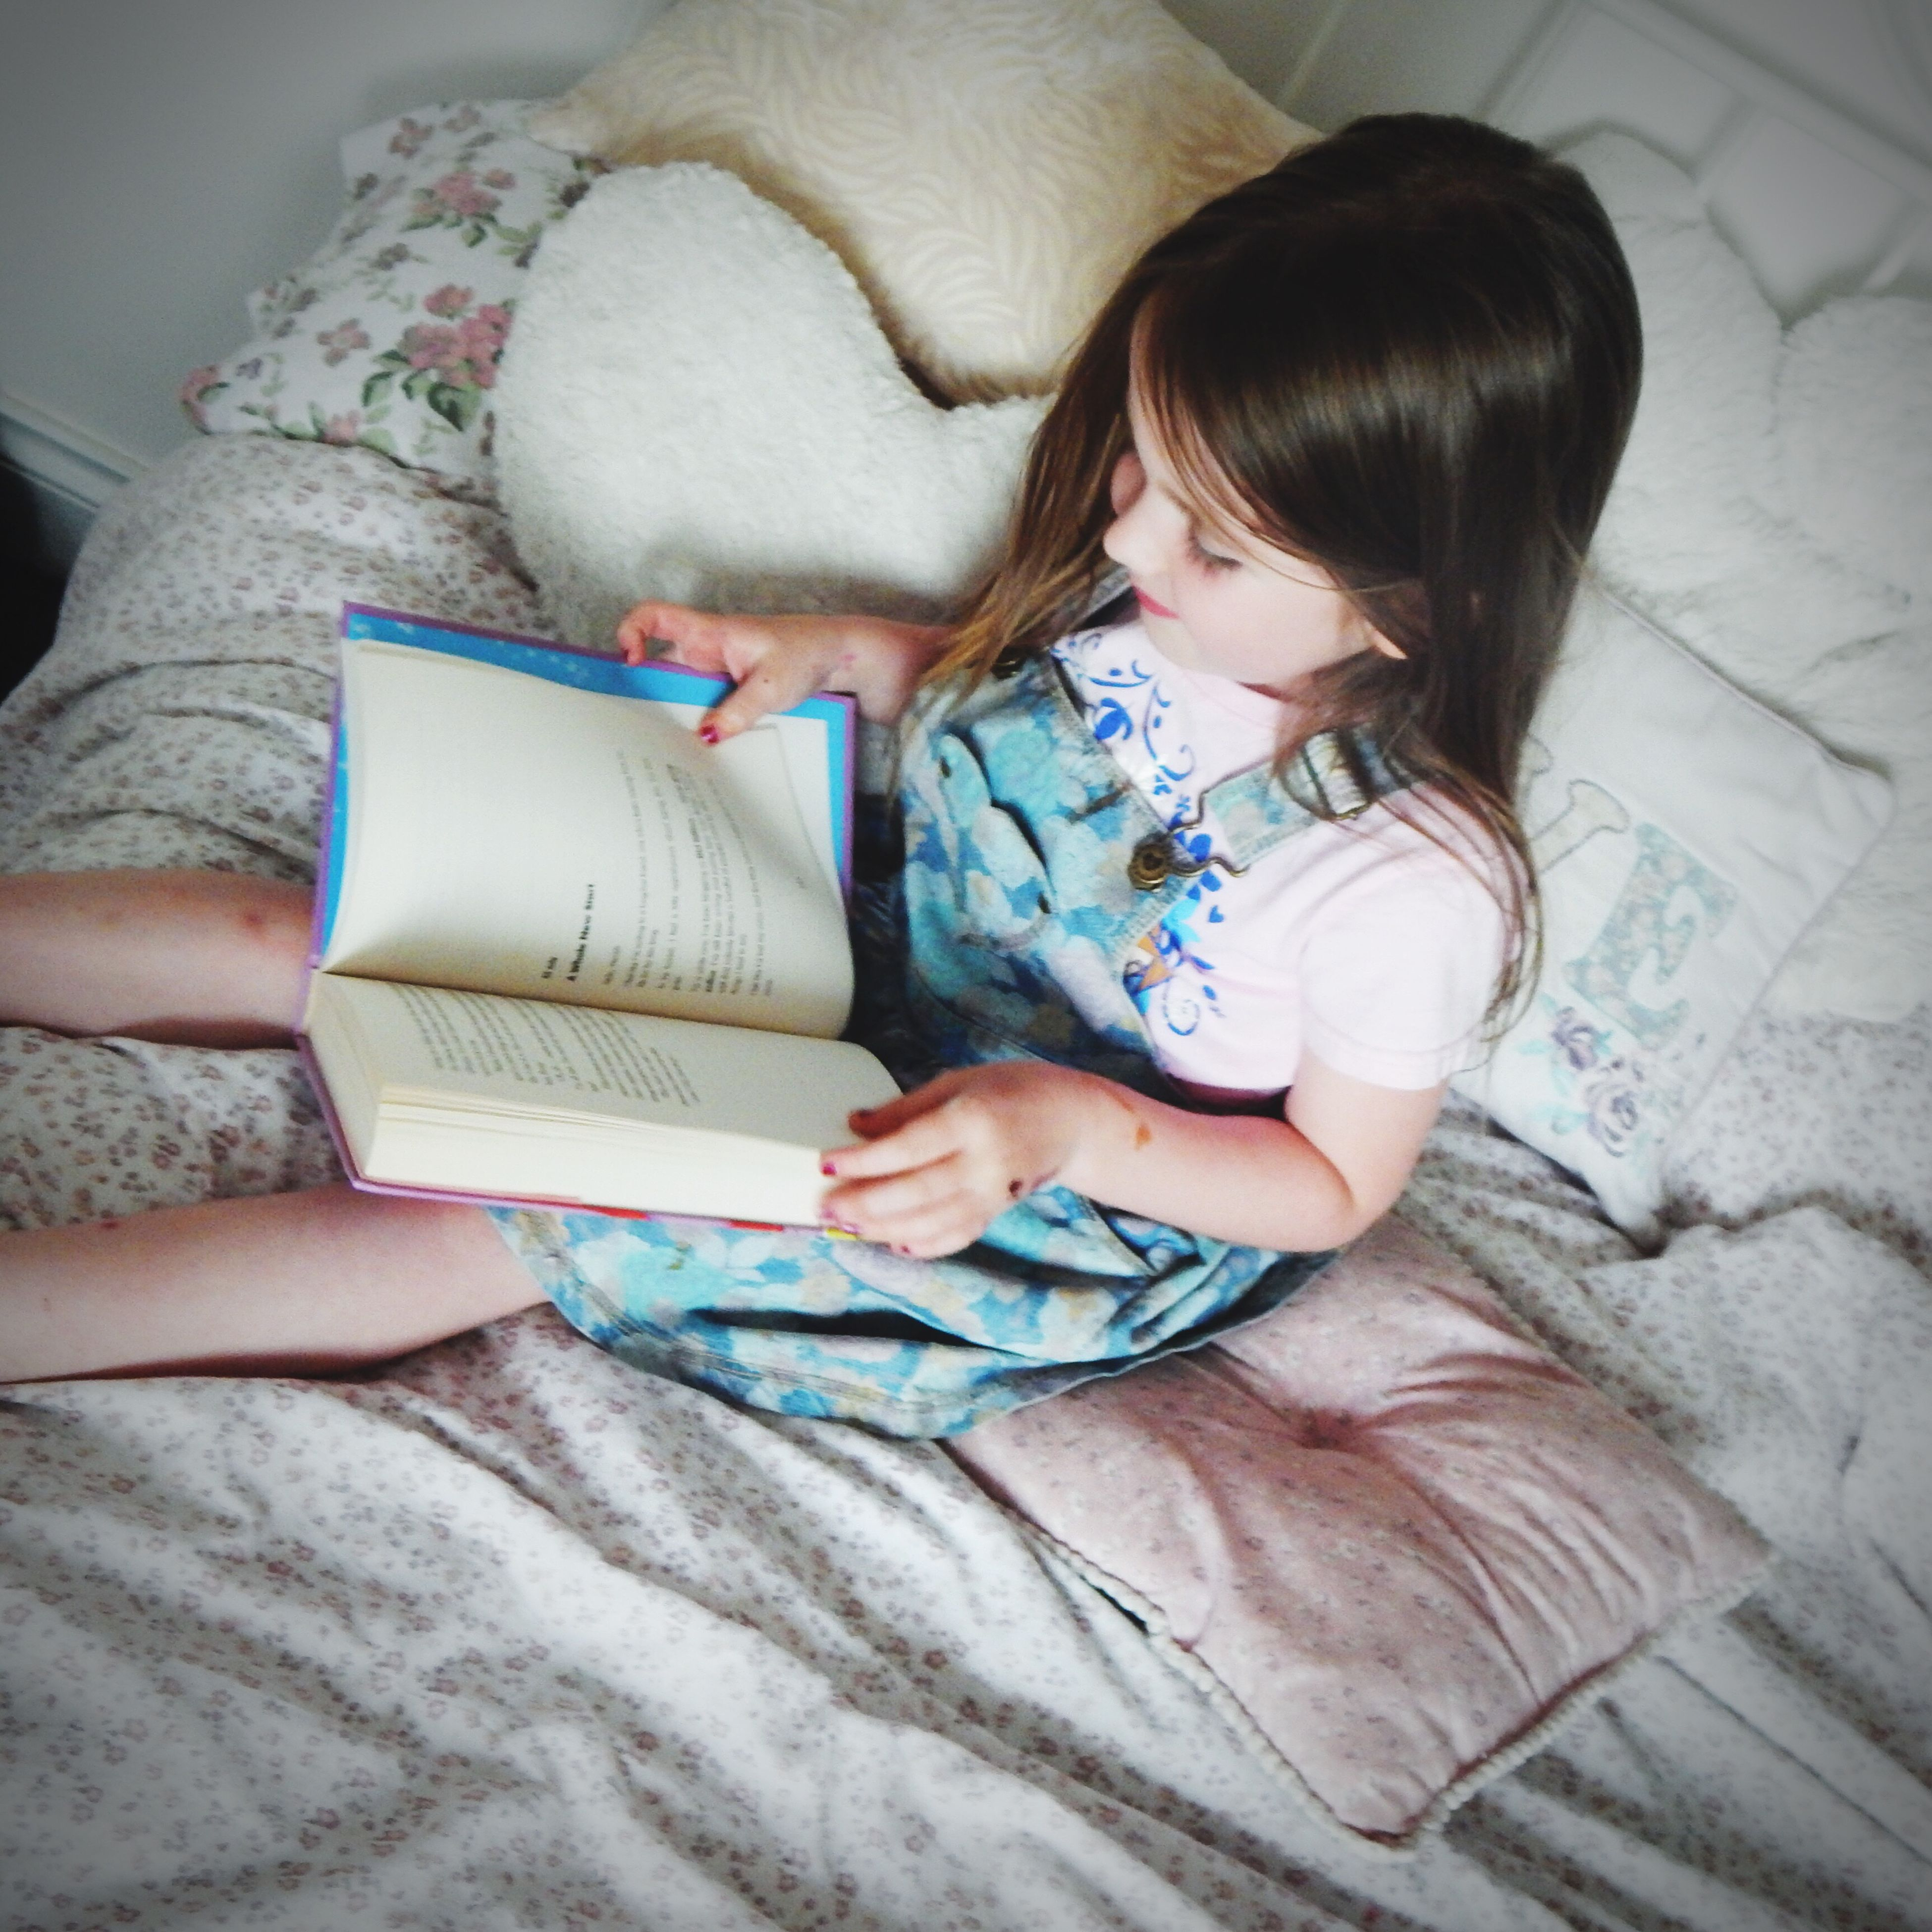 childhood, person, lifestyles, indoors, leisure activity, casual clothing, innocence, elementary age, relaxation, sitting, bed, cute, high angle view, girls, babyhood, lying down, home interior, boys